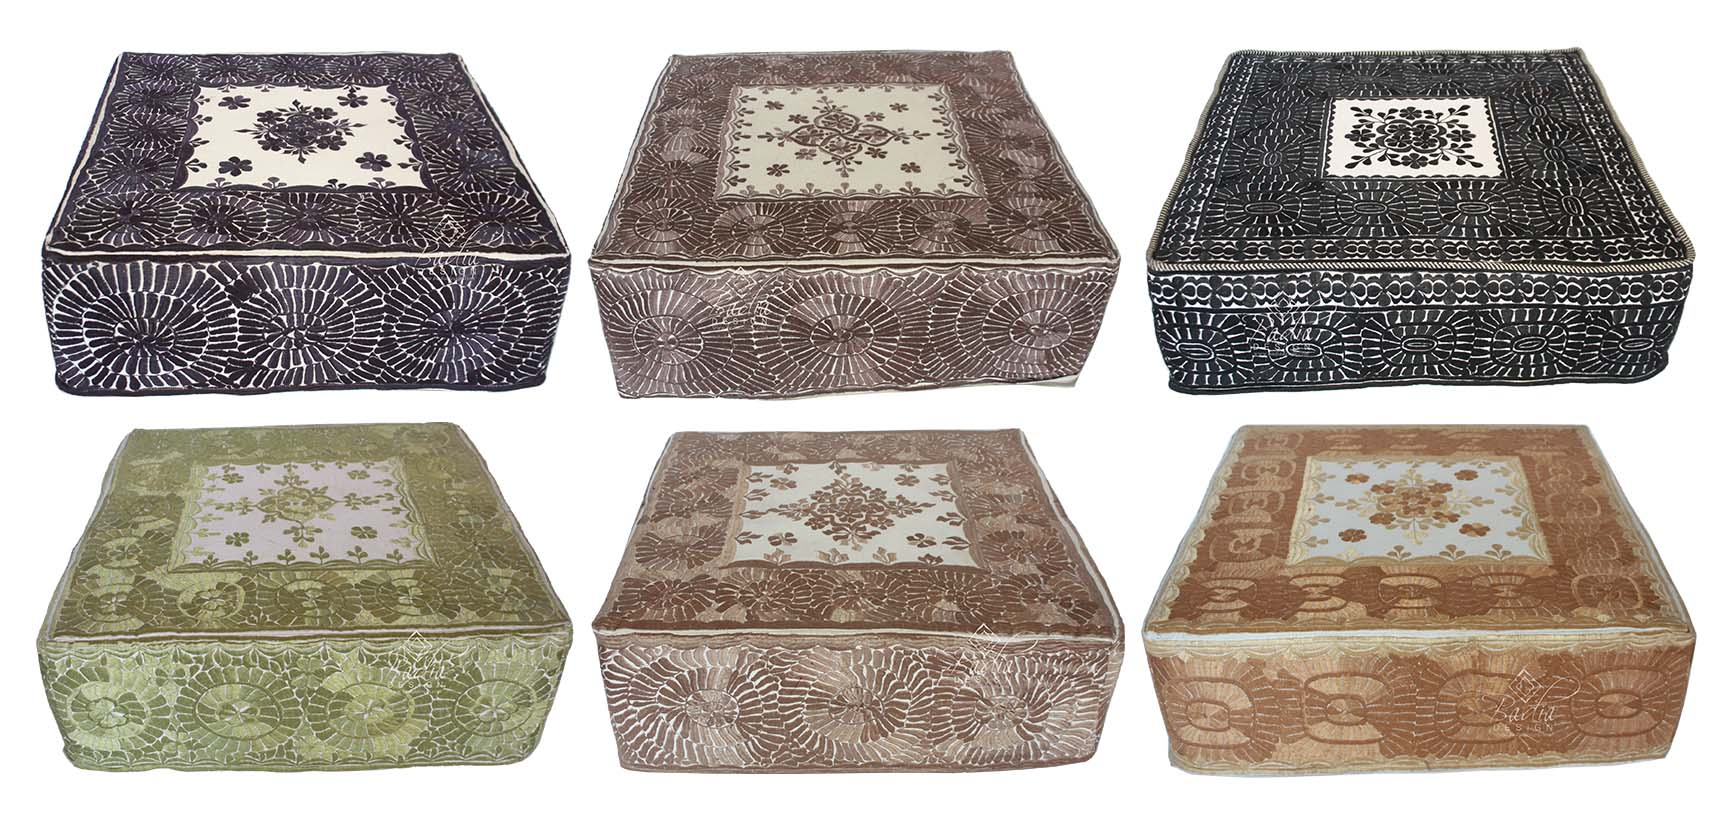 moroccan-square-floor-cushion-fp715.jpg